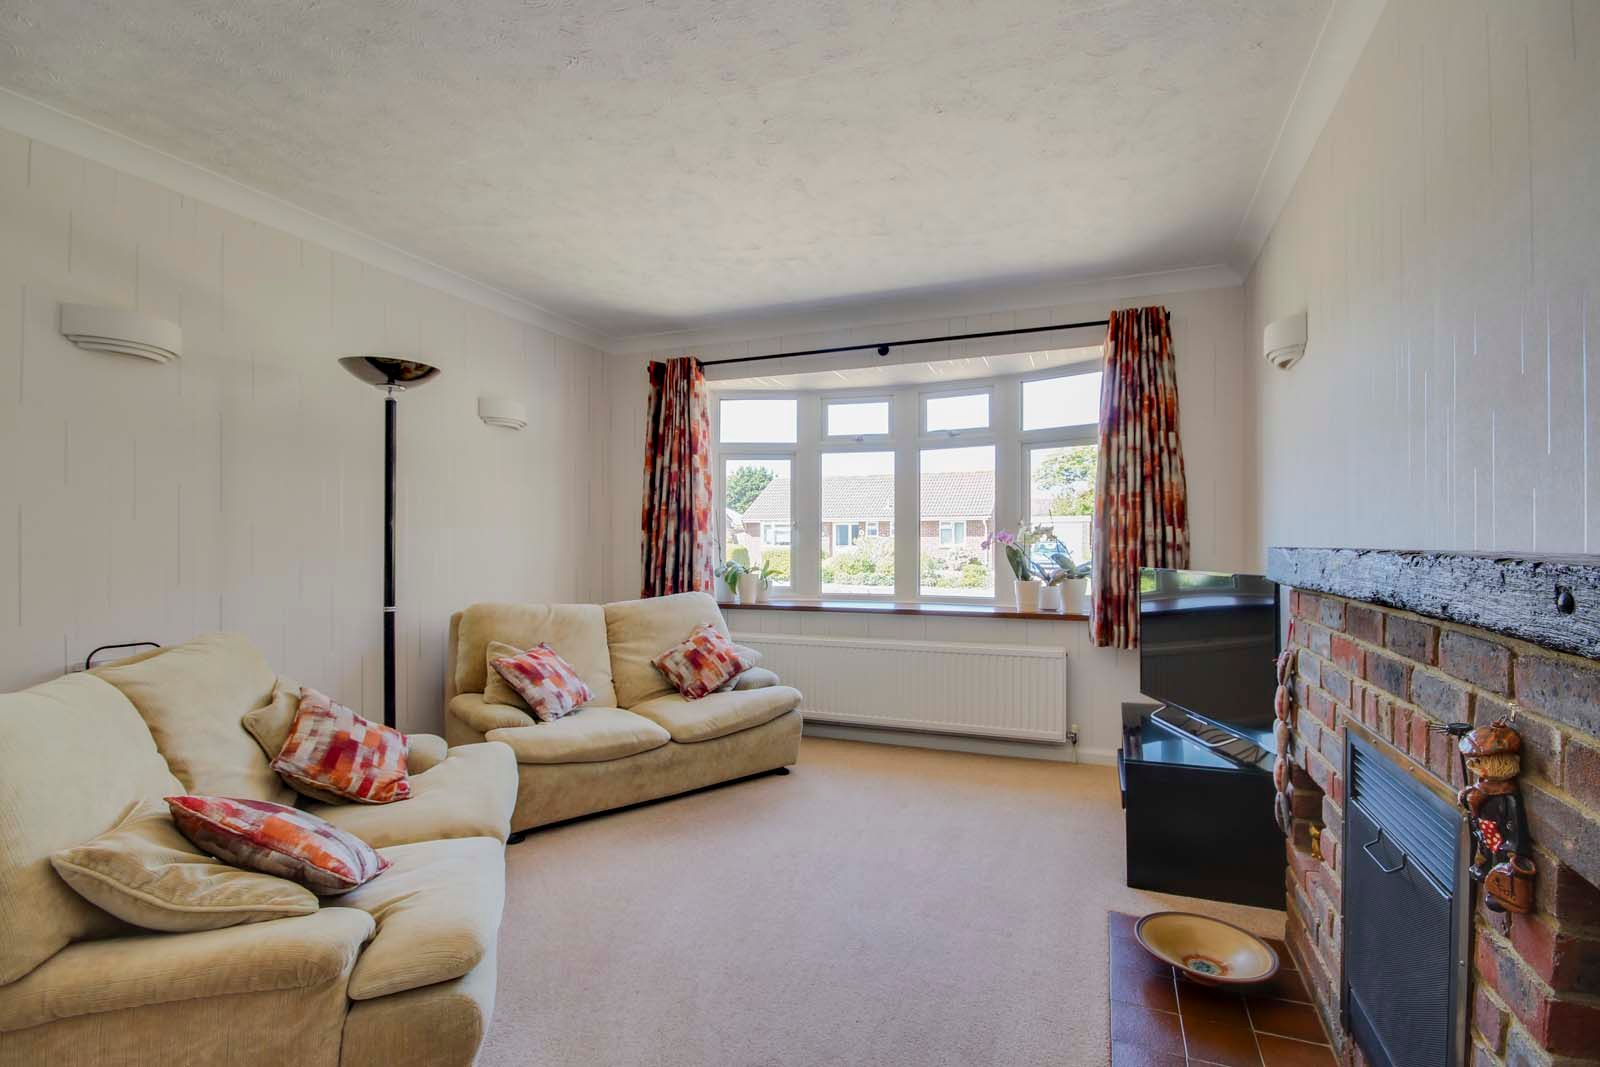 4 bed house for sale in Meadow Park COMP July 2019  - Property Image 3